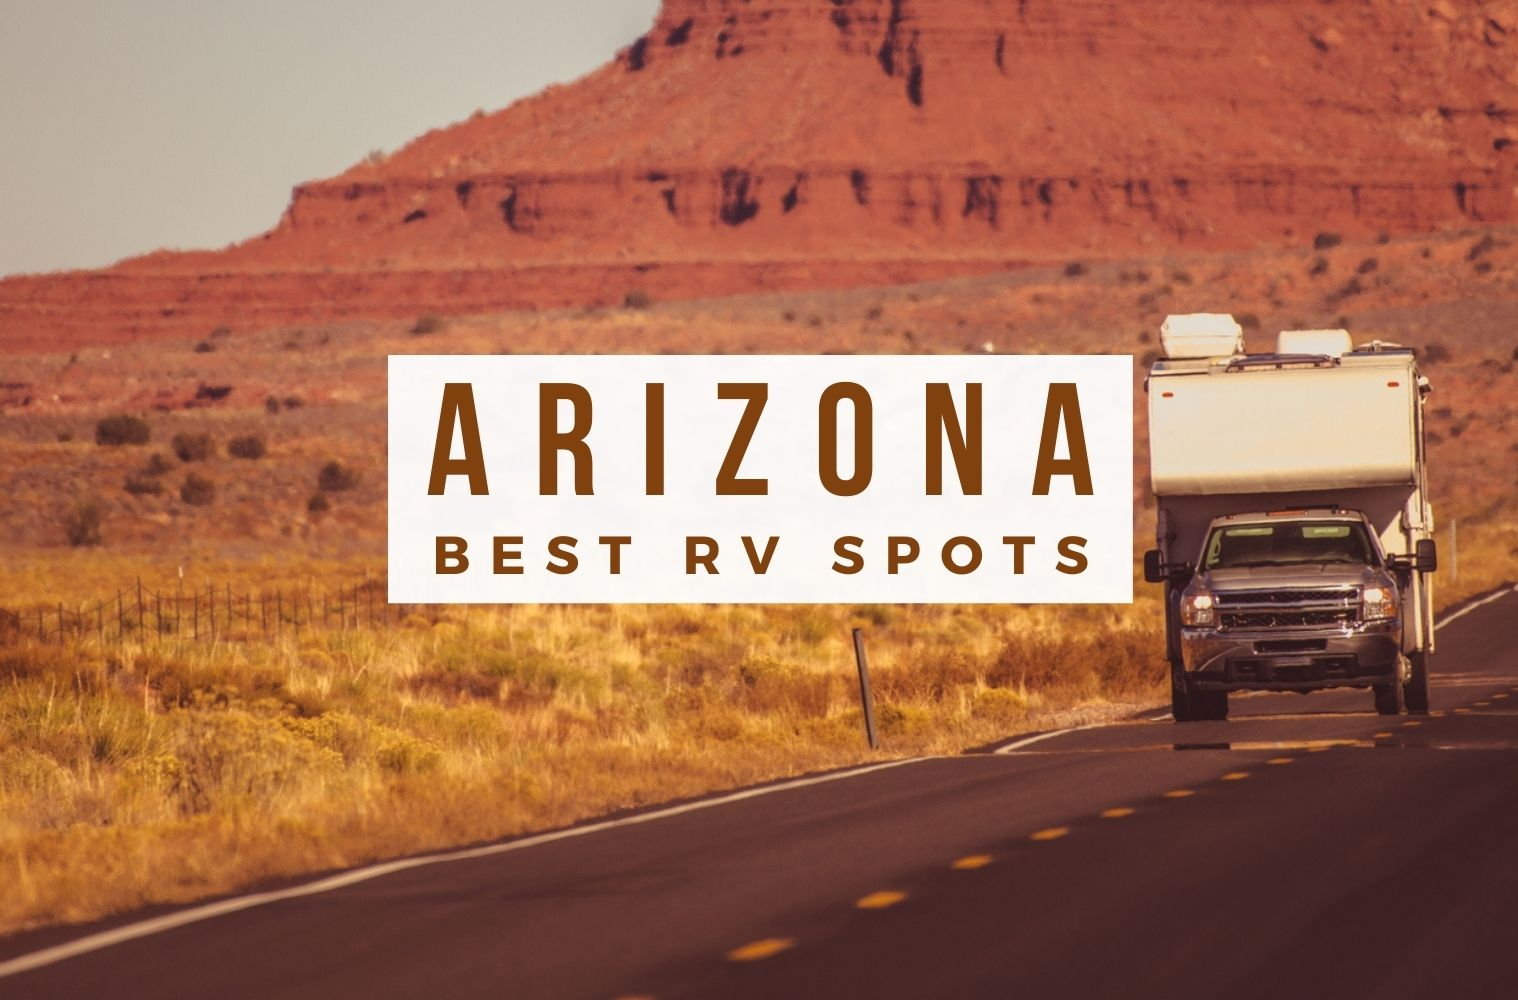 Best RV Parks and Resorts in Arizona